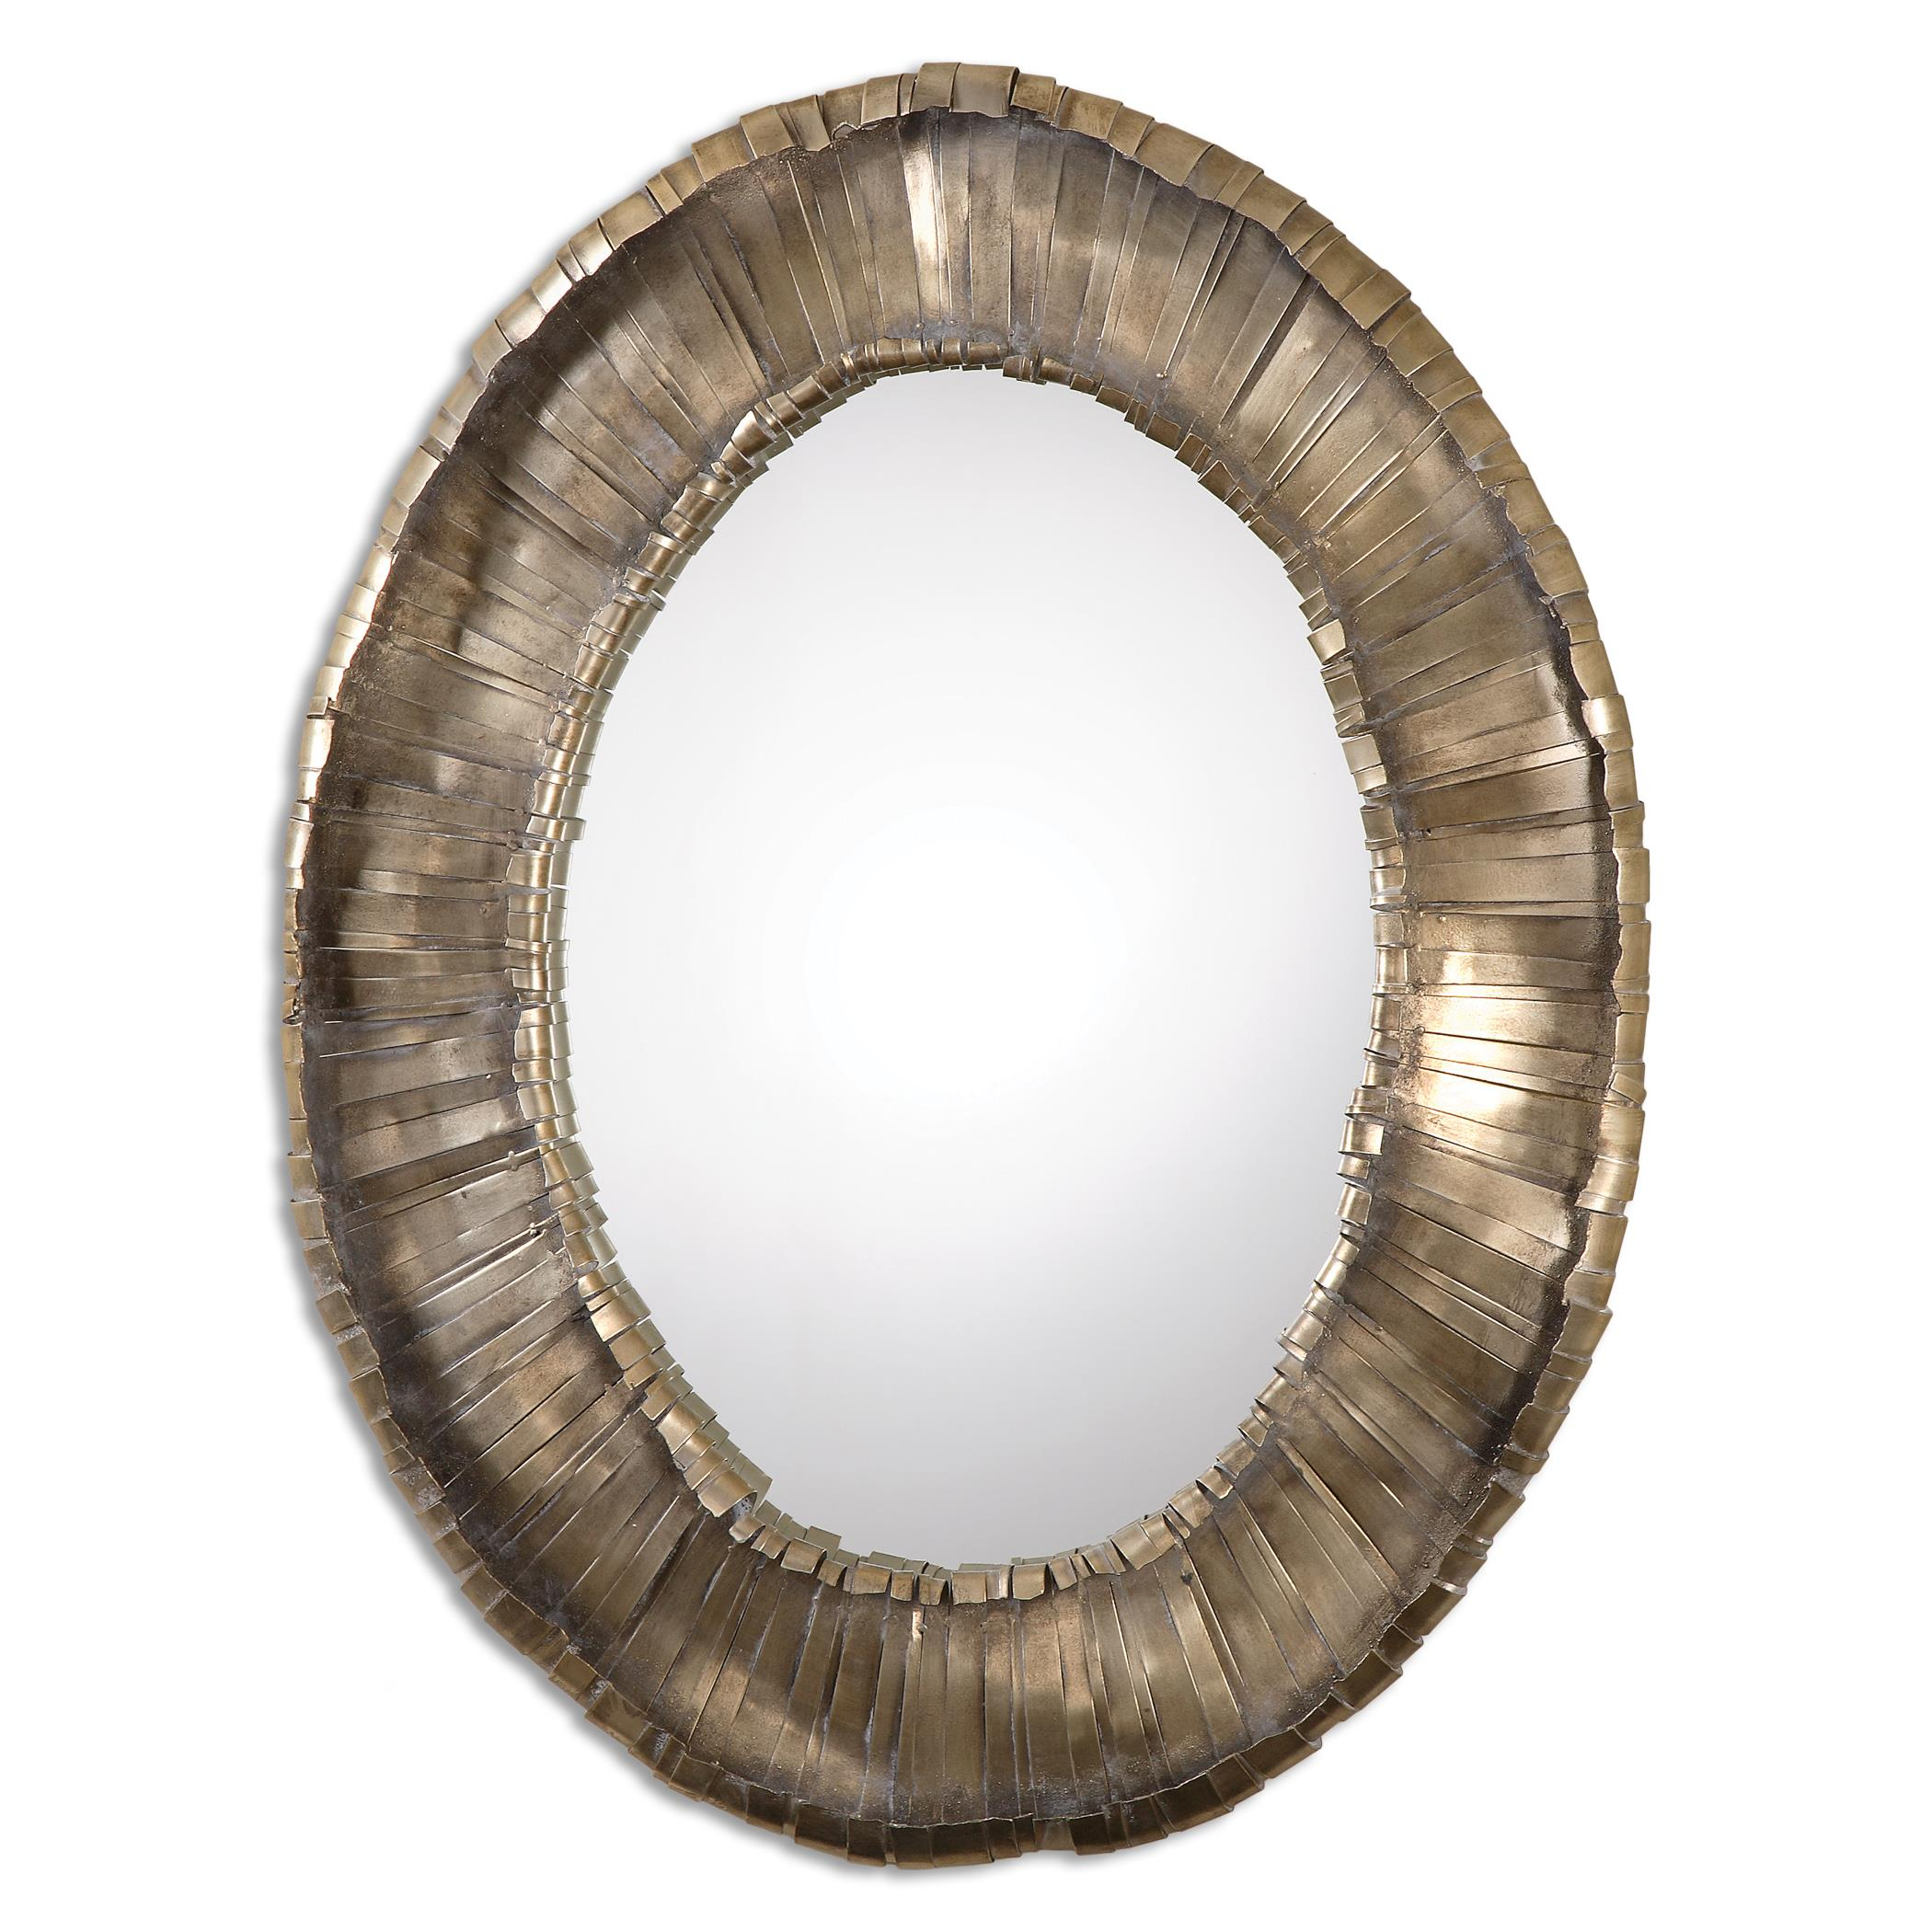 Uttermost Mirrors Vevila Oval Mirror - Item Number: 12914